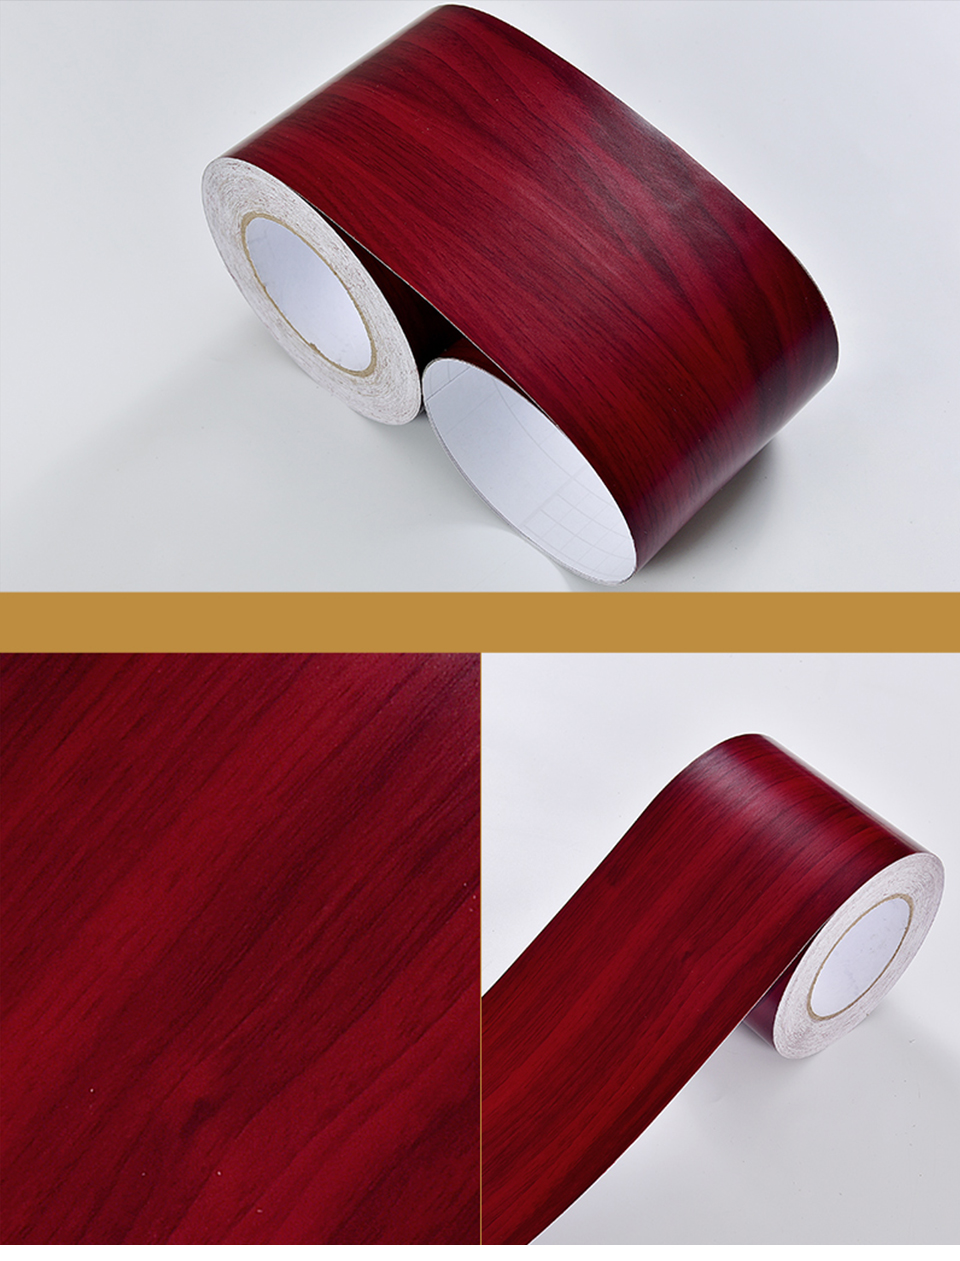 Wood Self Adhesive Window Decal Living Room Floor Border Skirting Contact Paper Waterproof Waist Line Wallpaper Home Improvement Hbe33c55ff36142efaf05748c9ea17d0dK